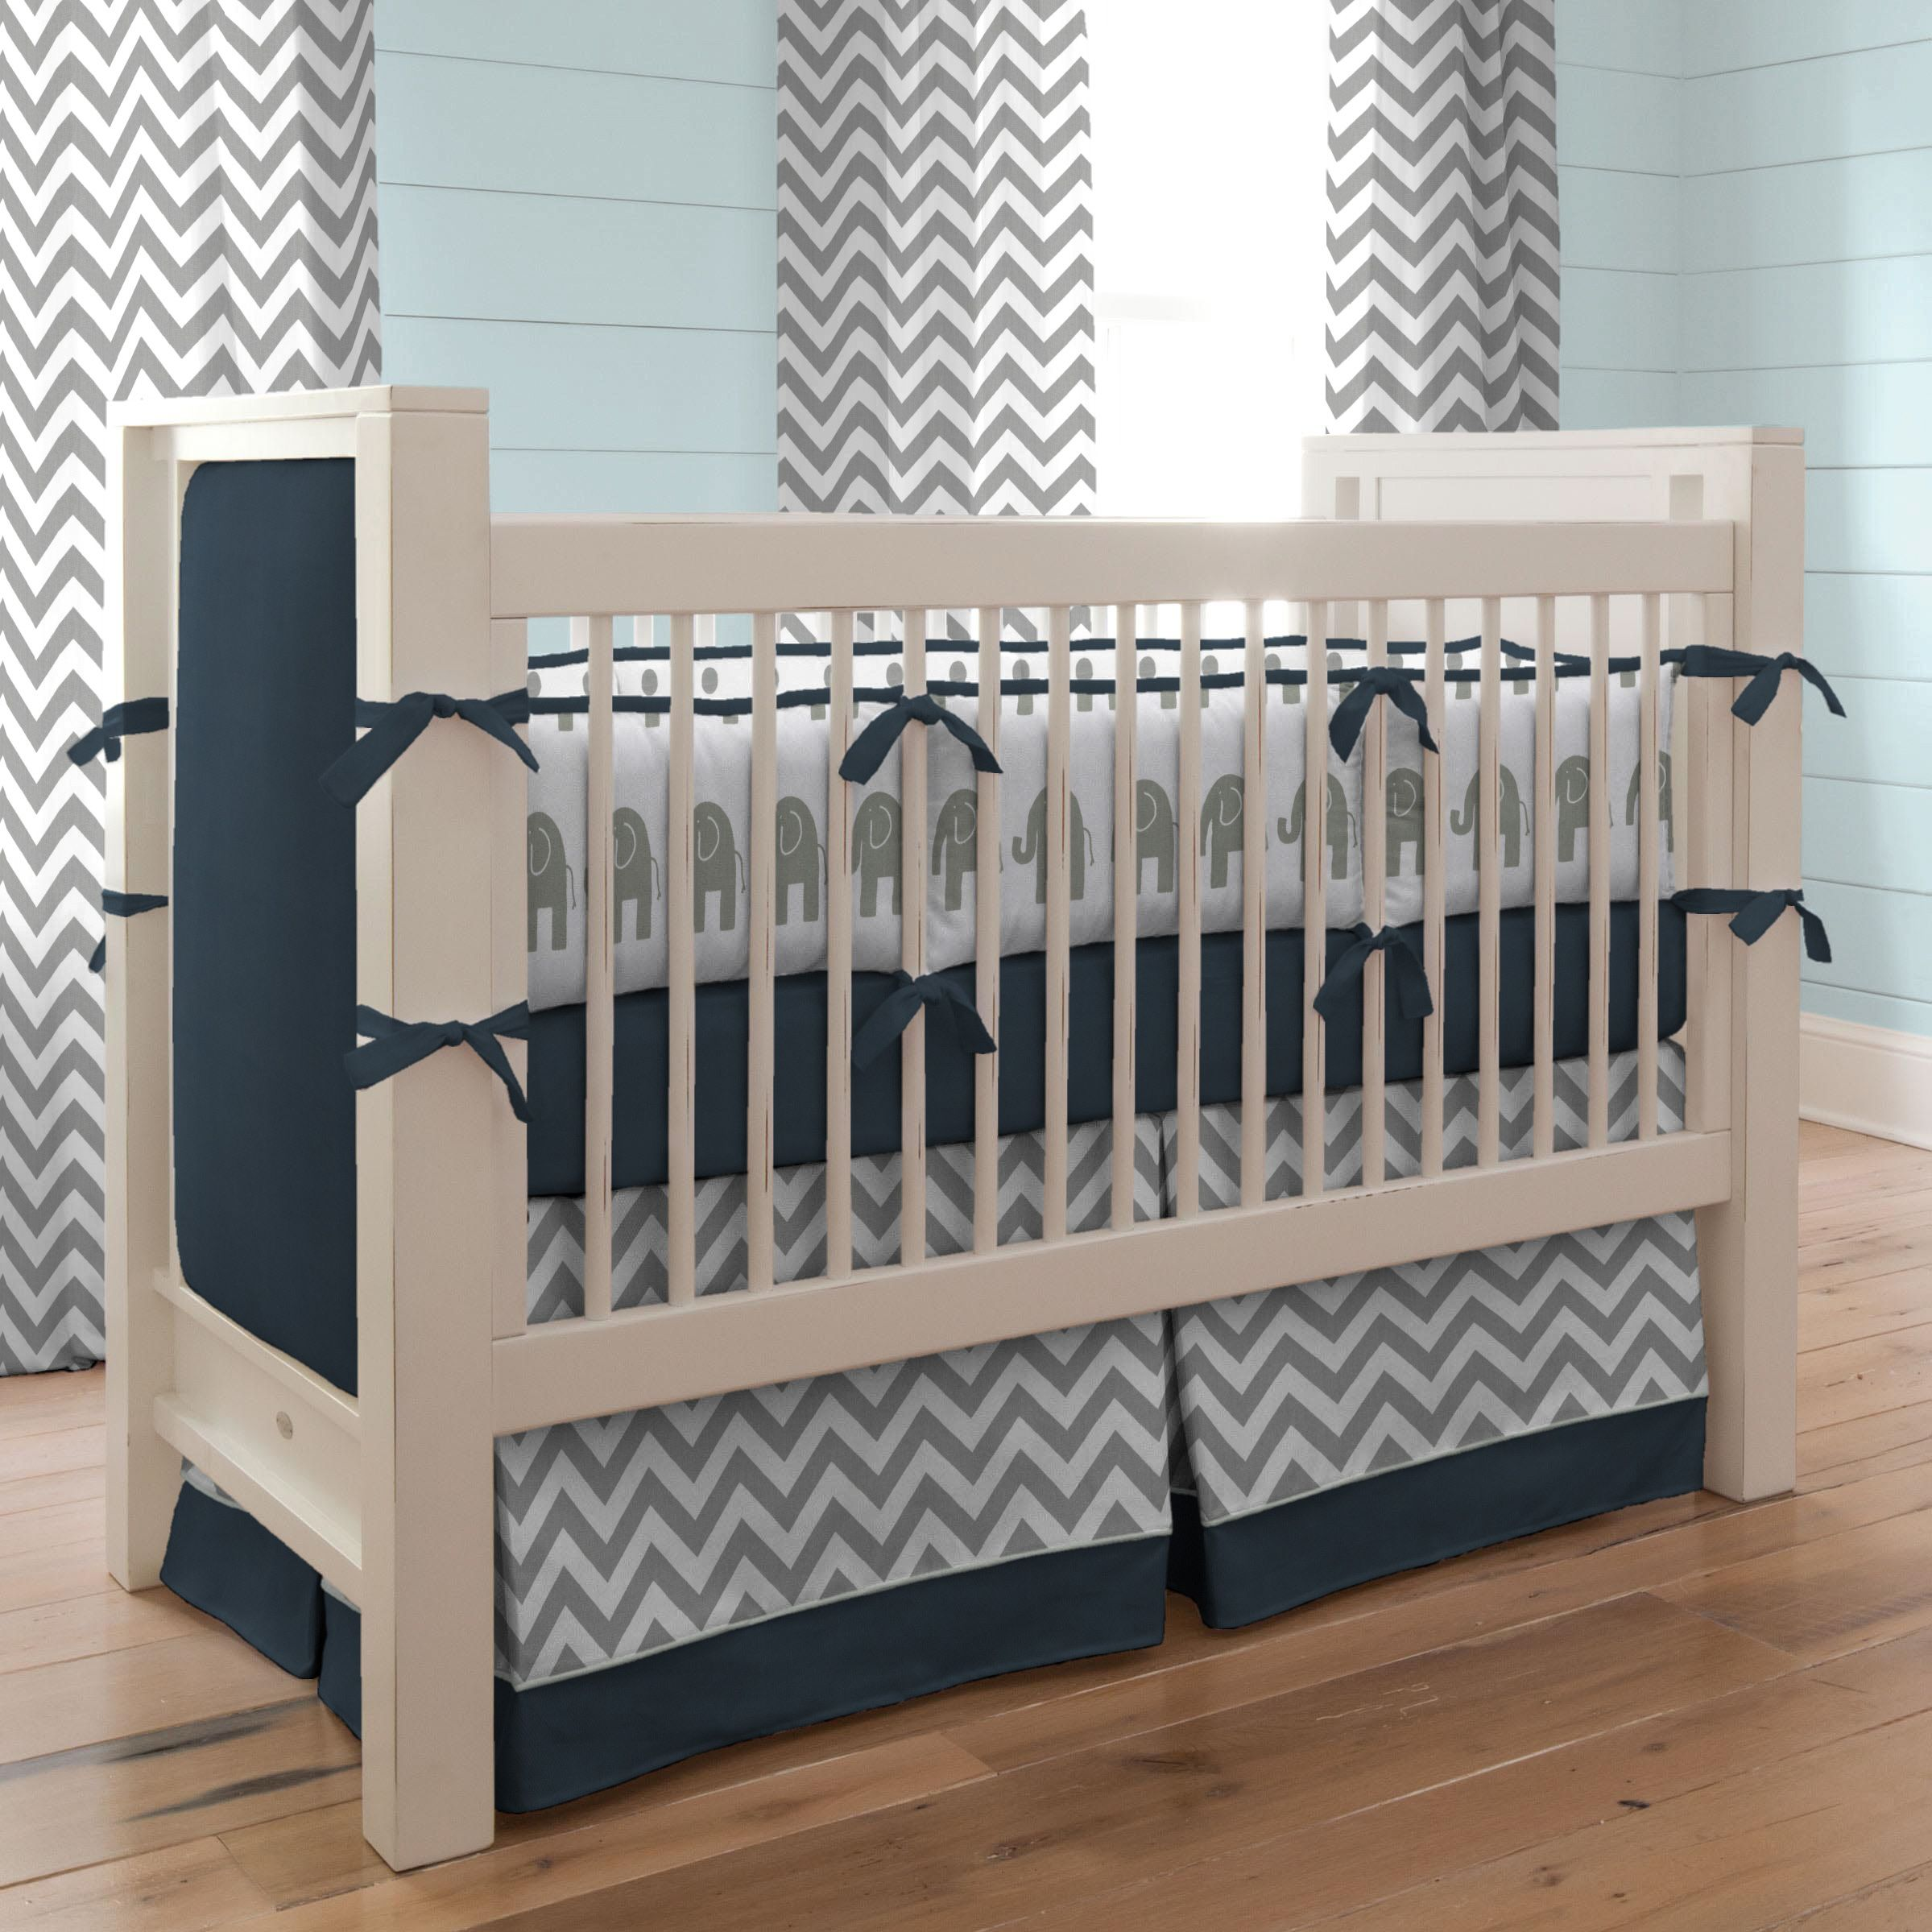 Best crib sheets for baby - 17 Best Images About Boy Crib Bedding On Pinterest Baby Crib Bedding Baby Bedding And Gray Crib